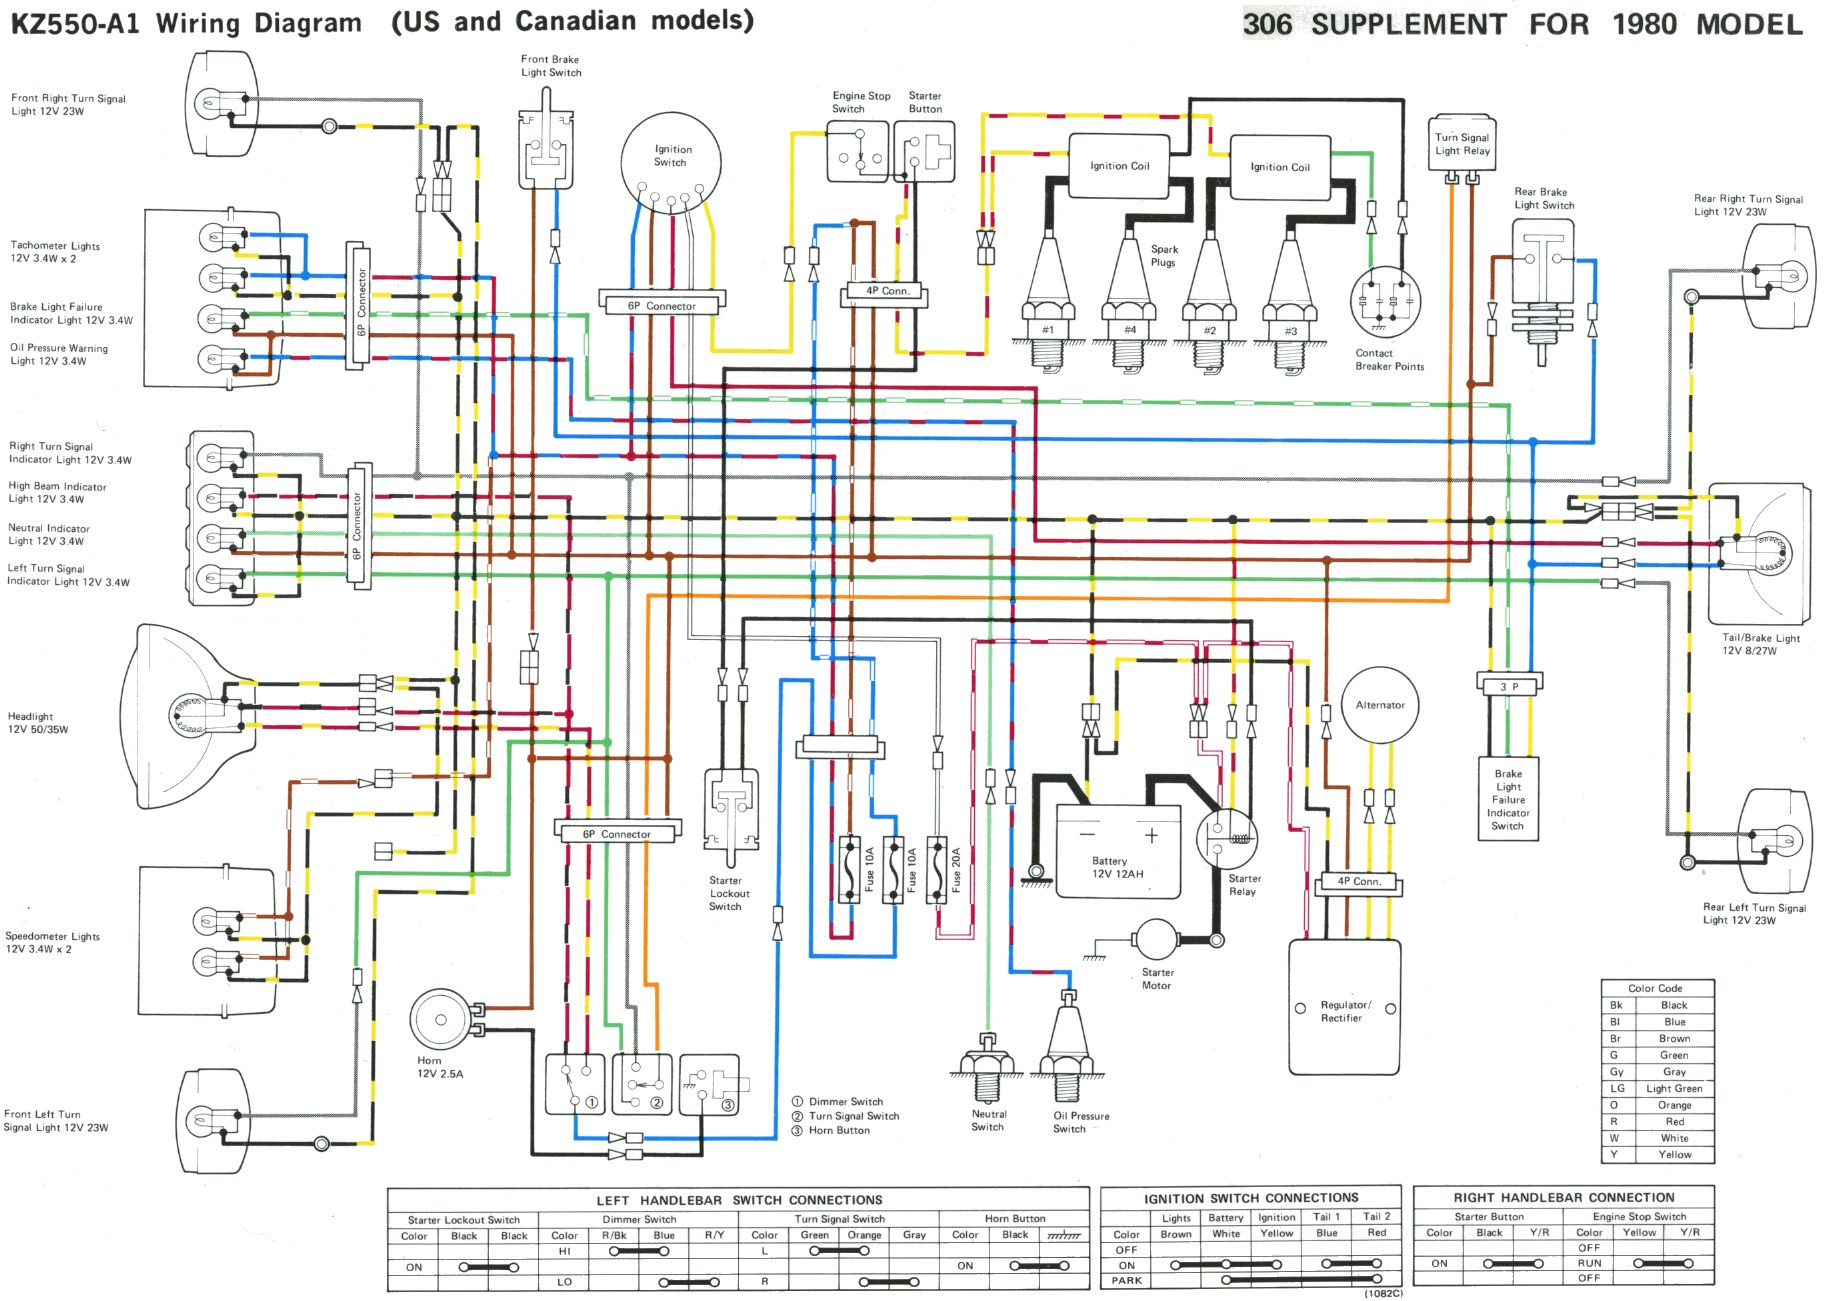 1981 Kz550 Ltd Wiring Diagram Archive Of Automotive A Amp E 82 Toyota Corolla Kawasaki Kz750 Auto Electrical Rh Doesitsuit Me